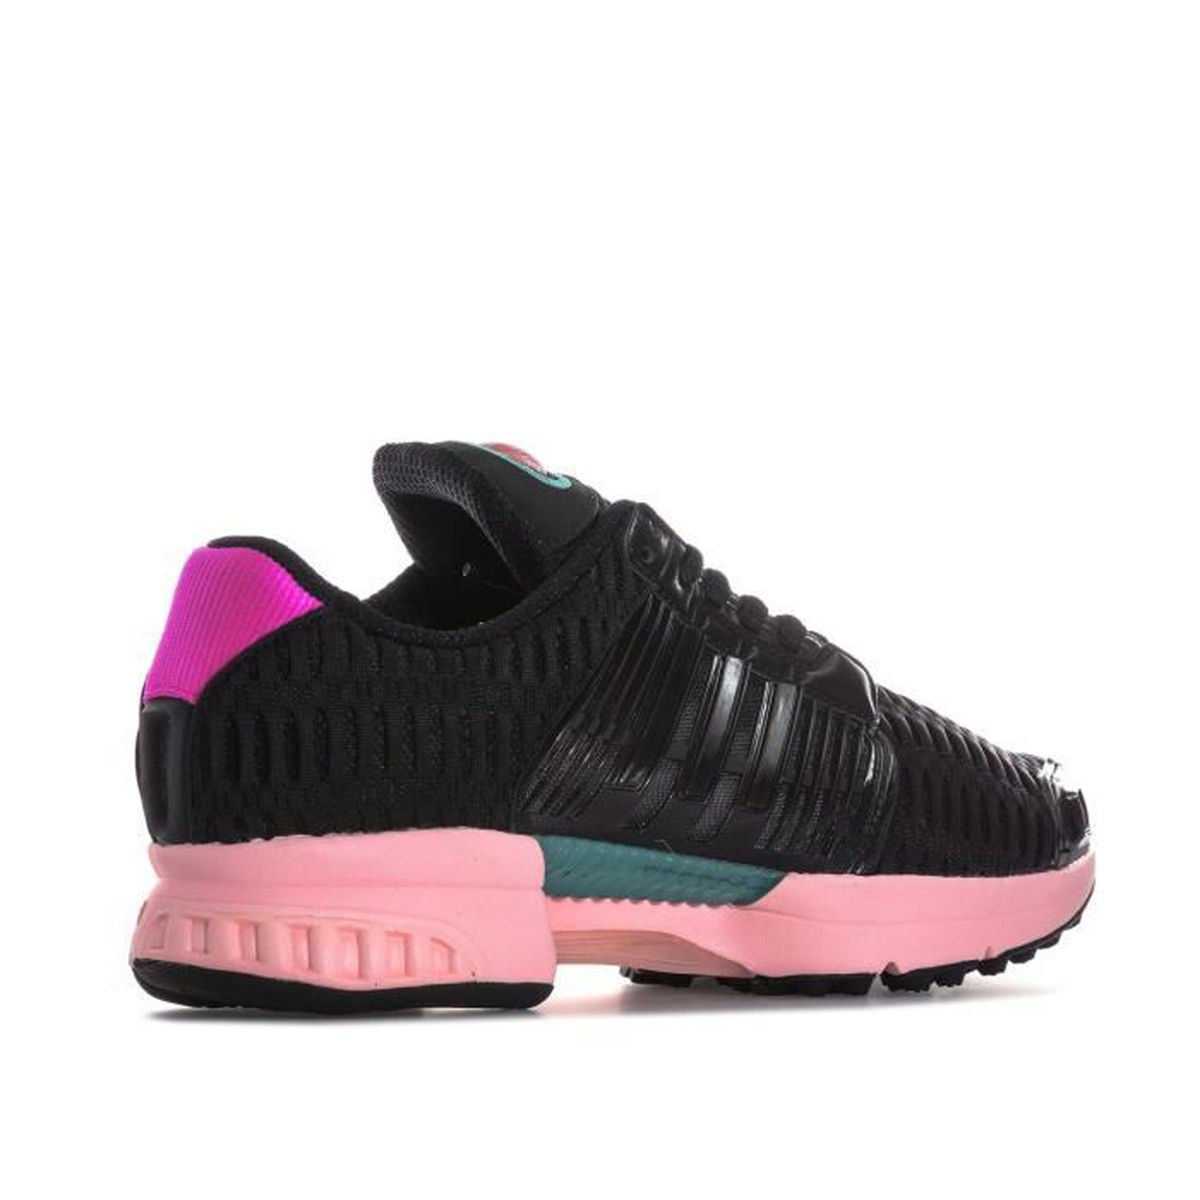 Femme Chaussures Femme Chaussures Adidas Climacool Adidas Baskets Adidas Climacool Femme Baskets qUZn1tH